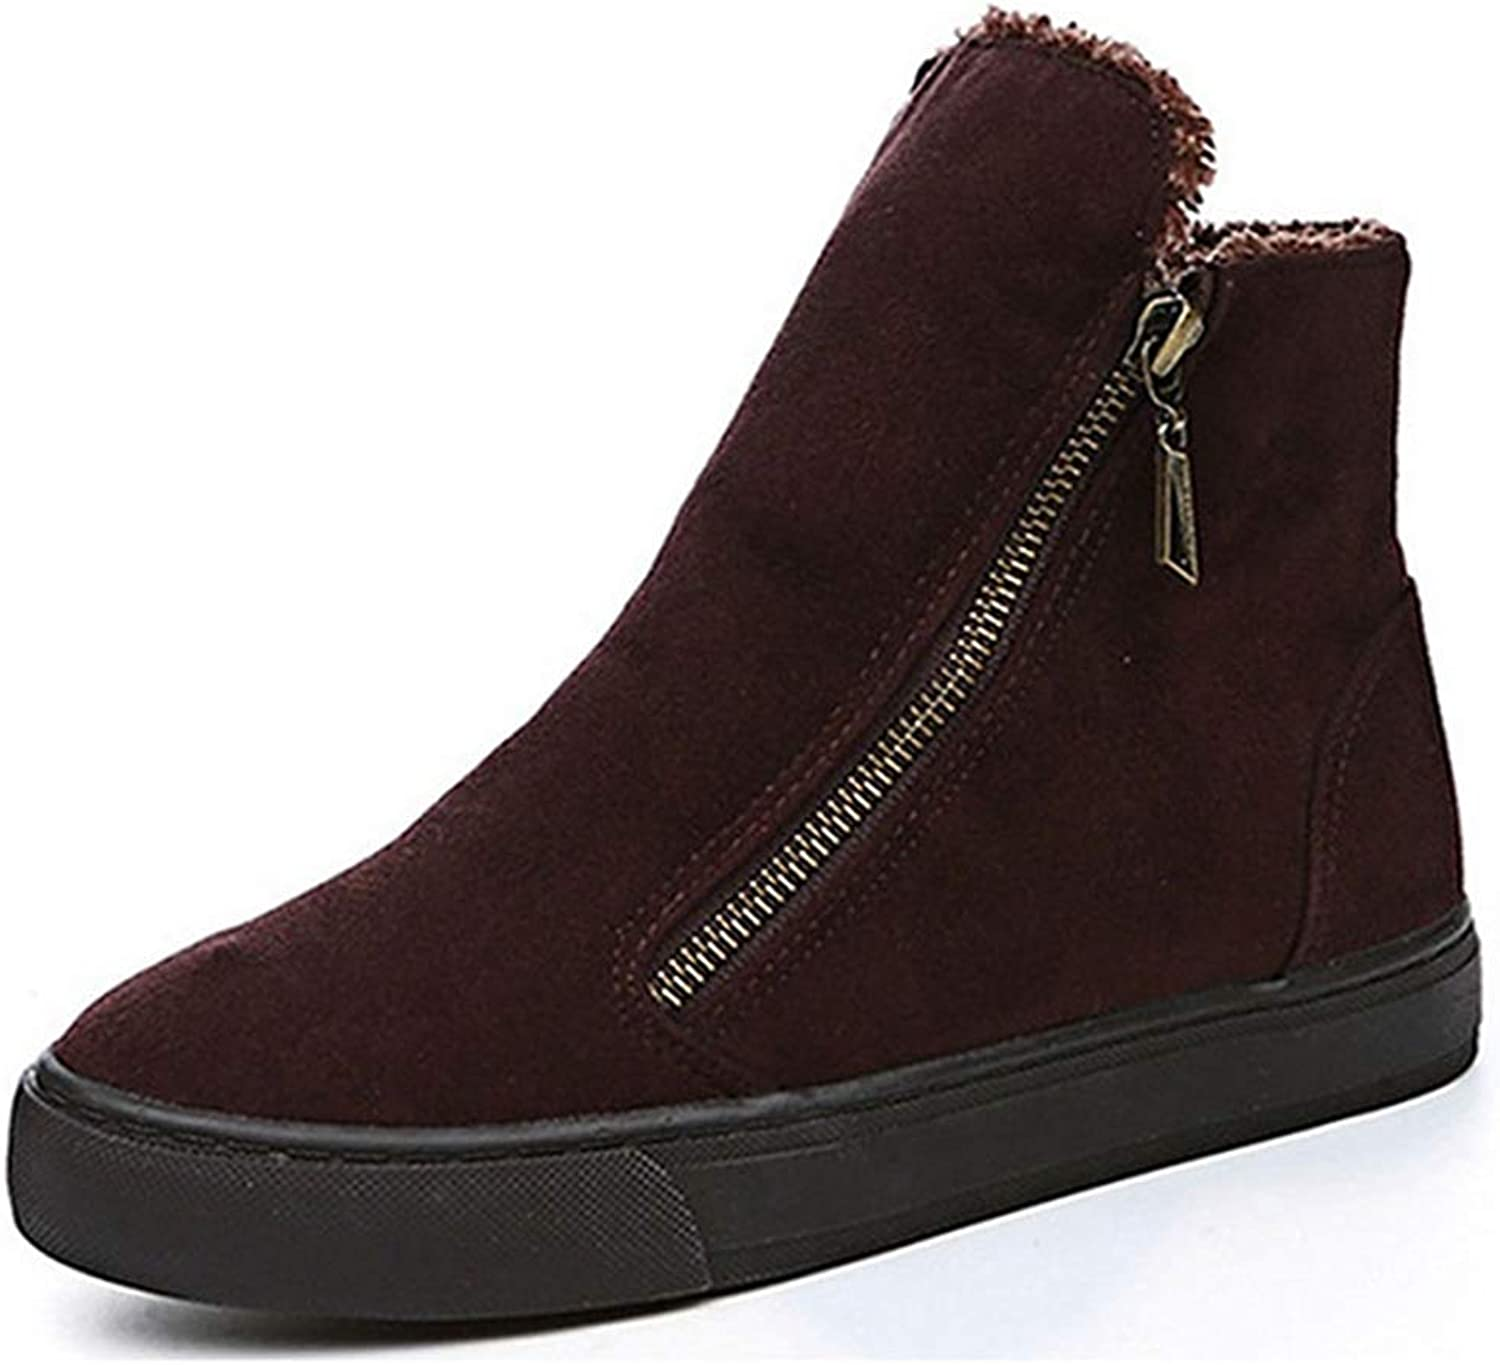 Fay Waters Womens Winter Casual Round Toe Zip Flock Plush Ankle Booties Low Heel Sneakers Snow Boots